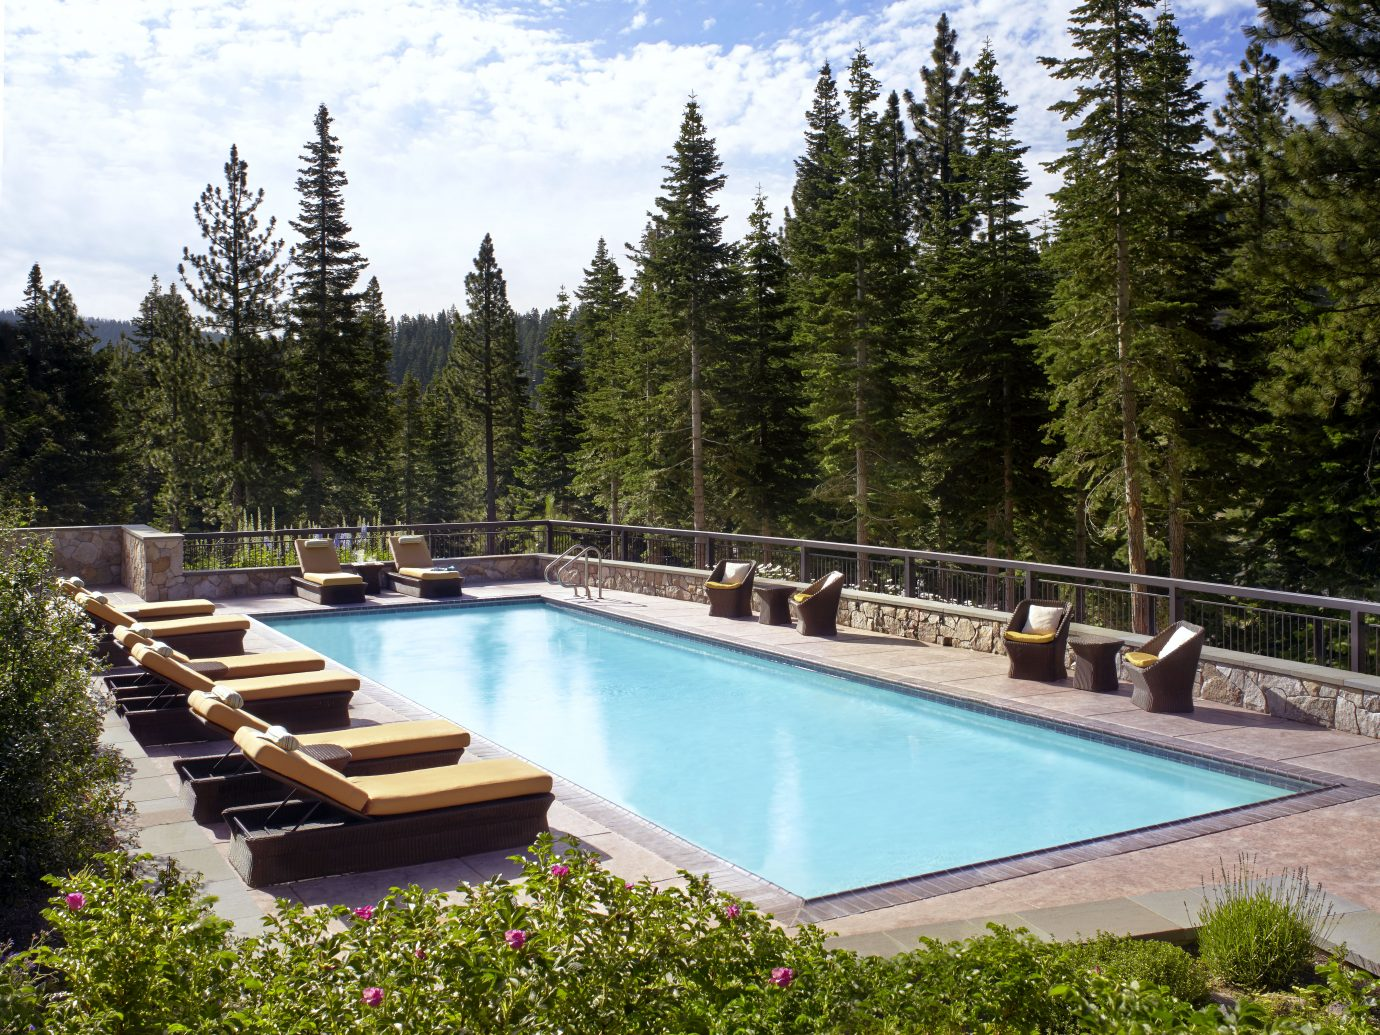 The Ritz-Carlton, Lake Tahoe pool